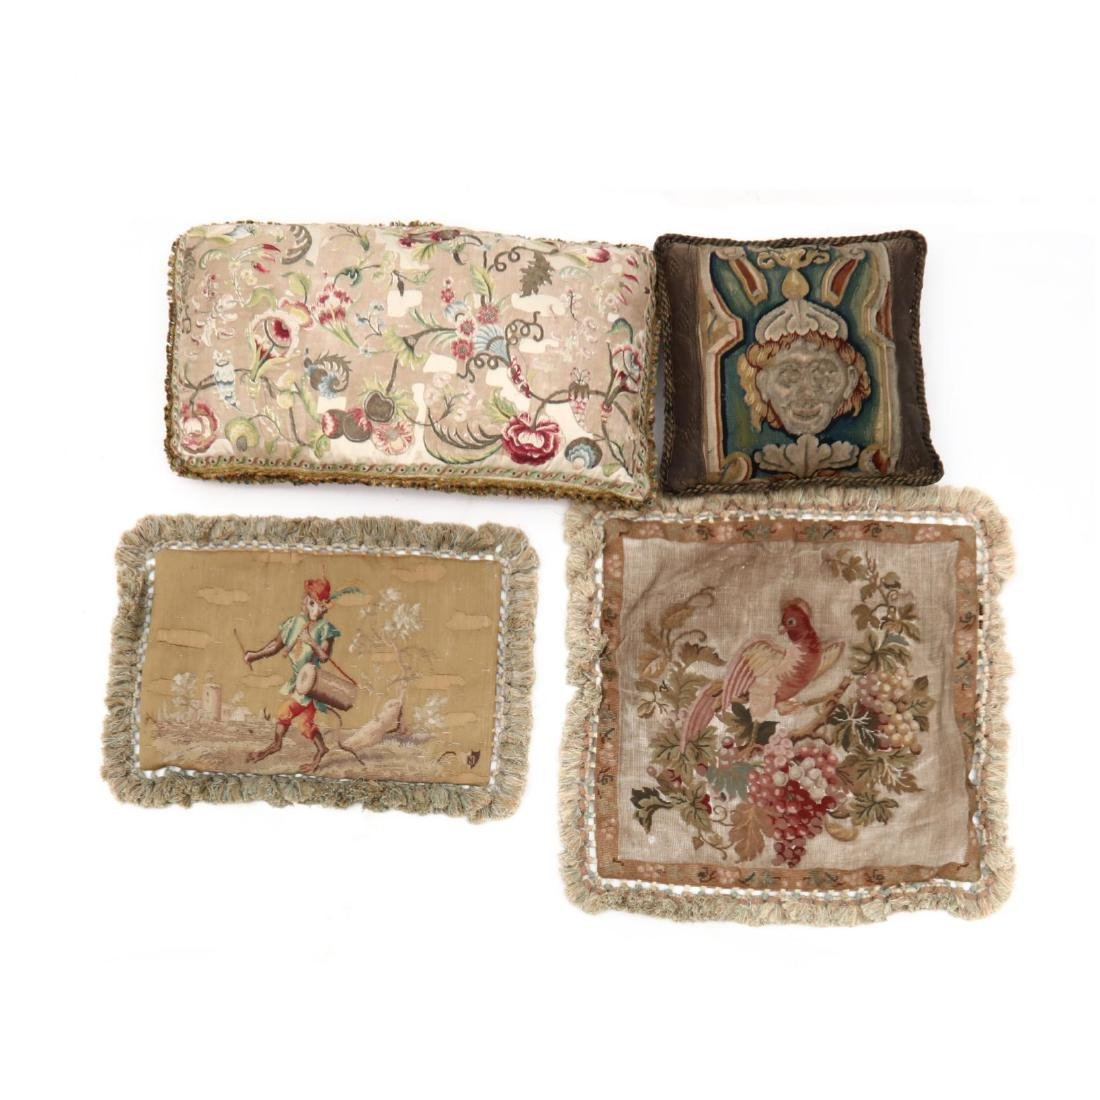 Four Antique Tapestry Covered Pillows and Pillowcases